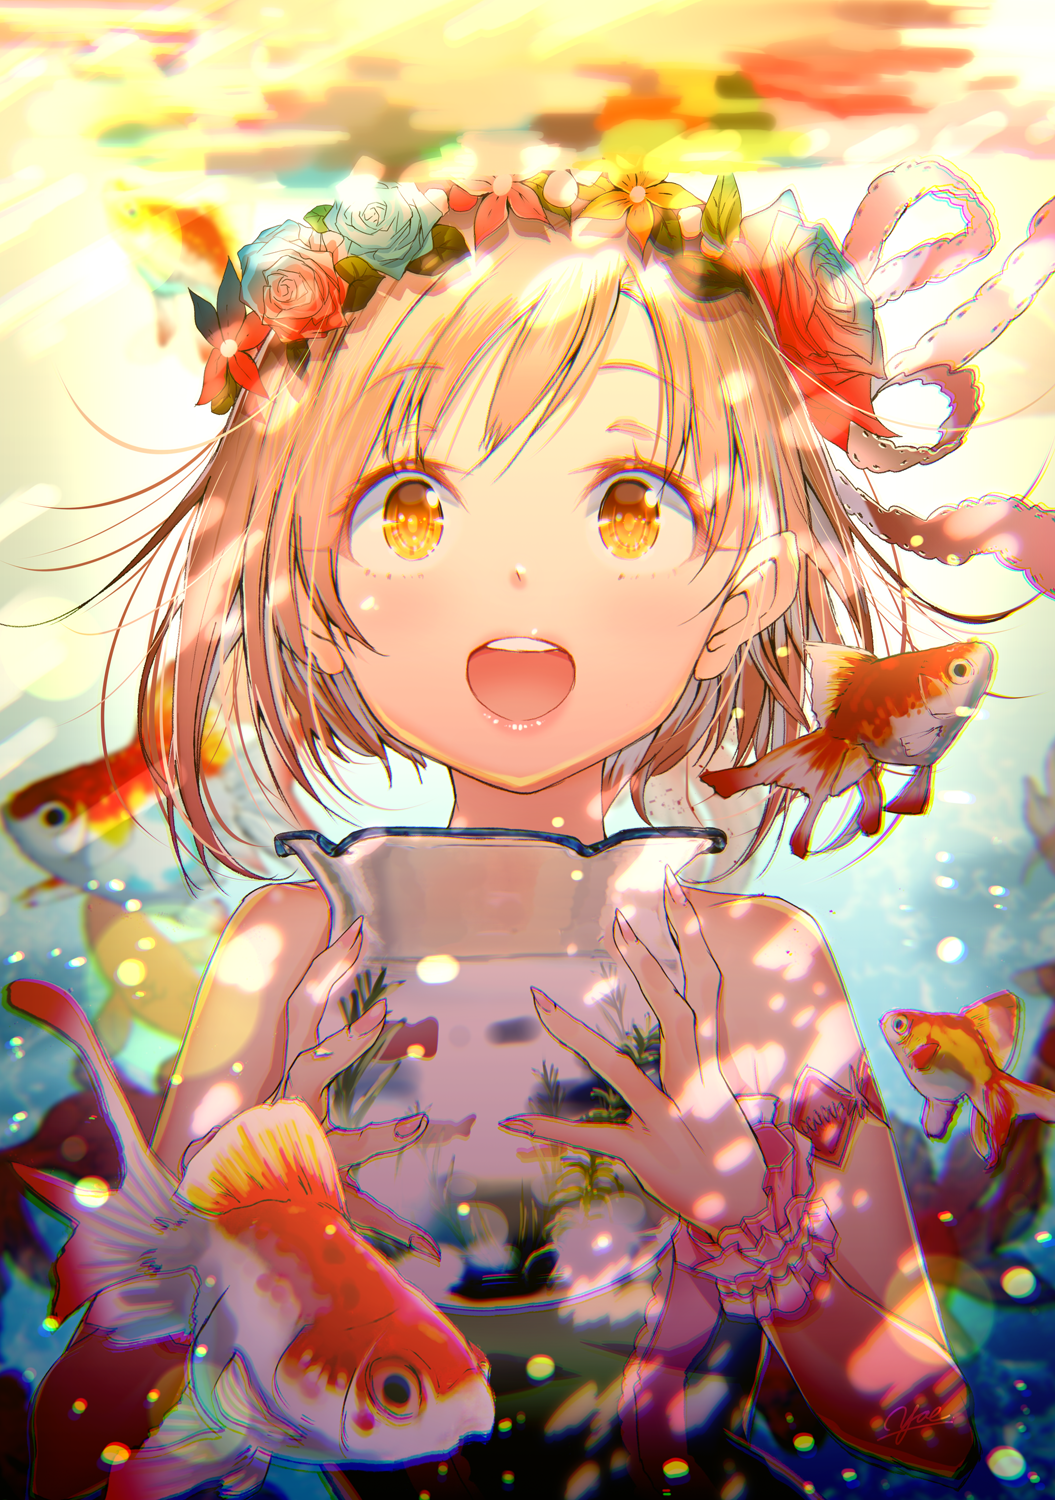 1girl aiba_yumi air_bubble bare_shoulders blonde_hair blush brown_eyes bubble commentary_request fish fish_tank floating_hair flower goldfish hair_flower hair_ornament hair_ribbon headband highres holding idolmaster idolmaster_cinderella_girls looking_at_viewer open_mouth ribbon scrunchie short_hair smile solo submerged underwater water wrist_scrunchie yae_(mono110)